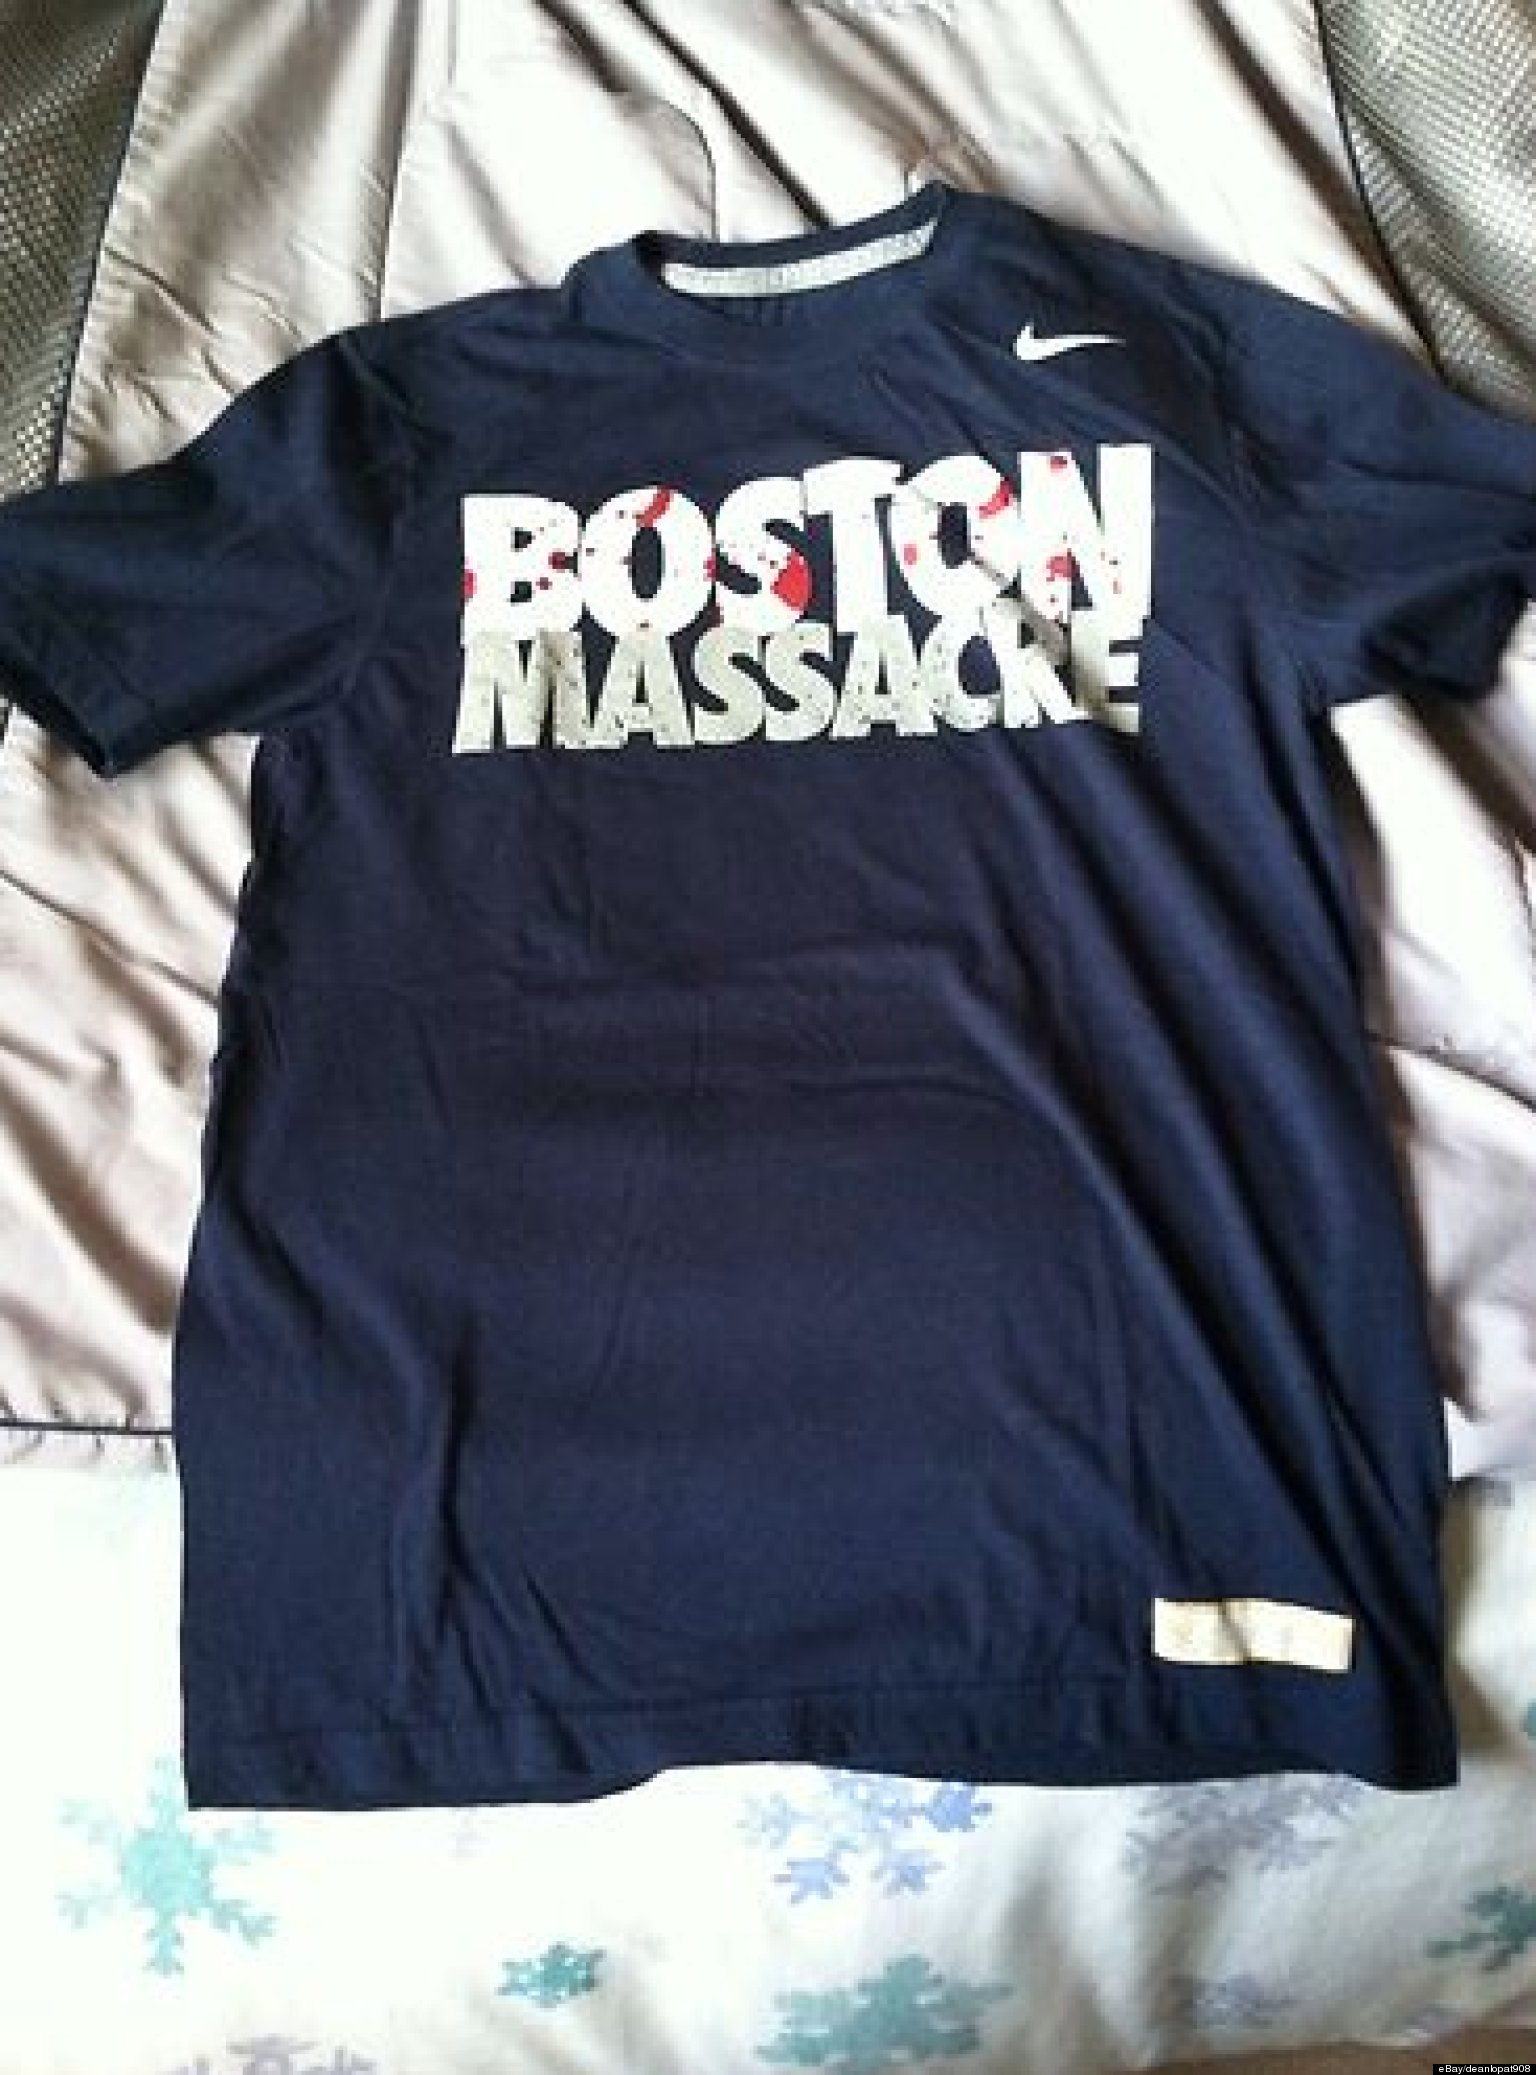 Black t shirt ebay - Nike Boston Massacre T Shirt On Ebay For 150 000 And People Have Bid That Much Huffpost